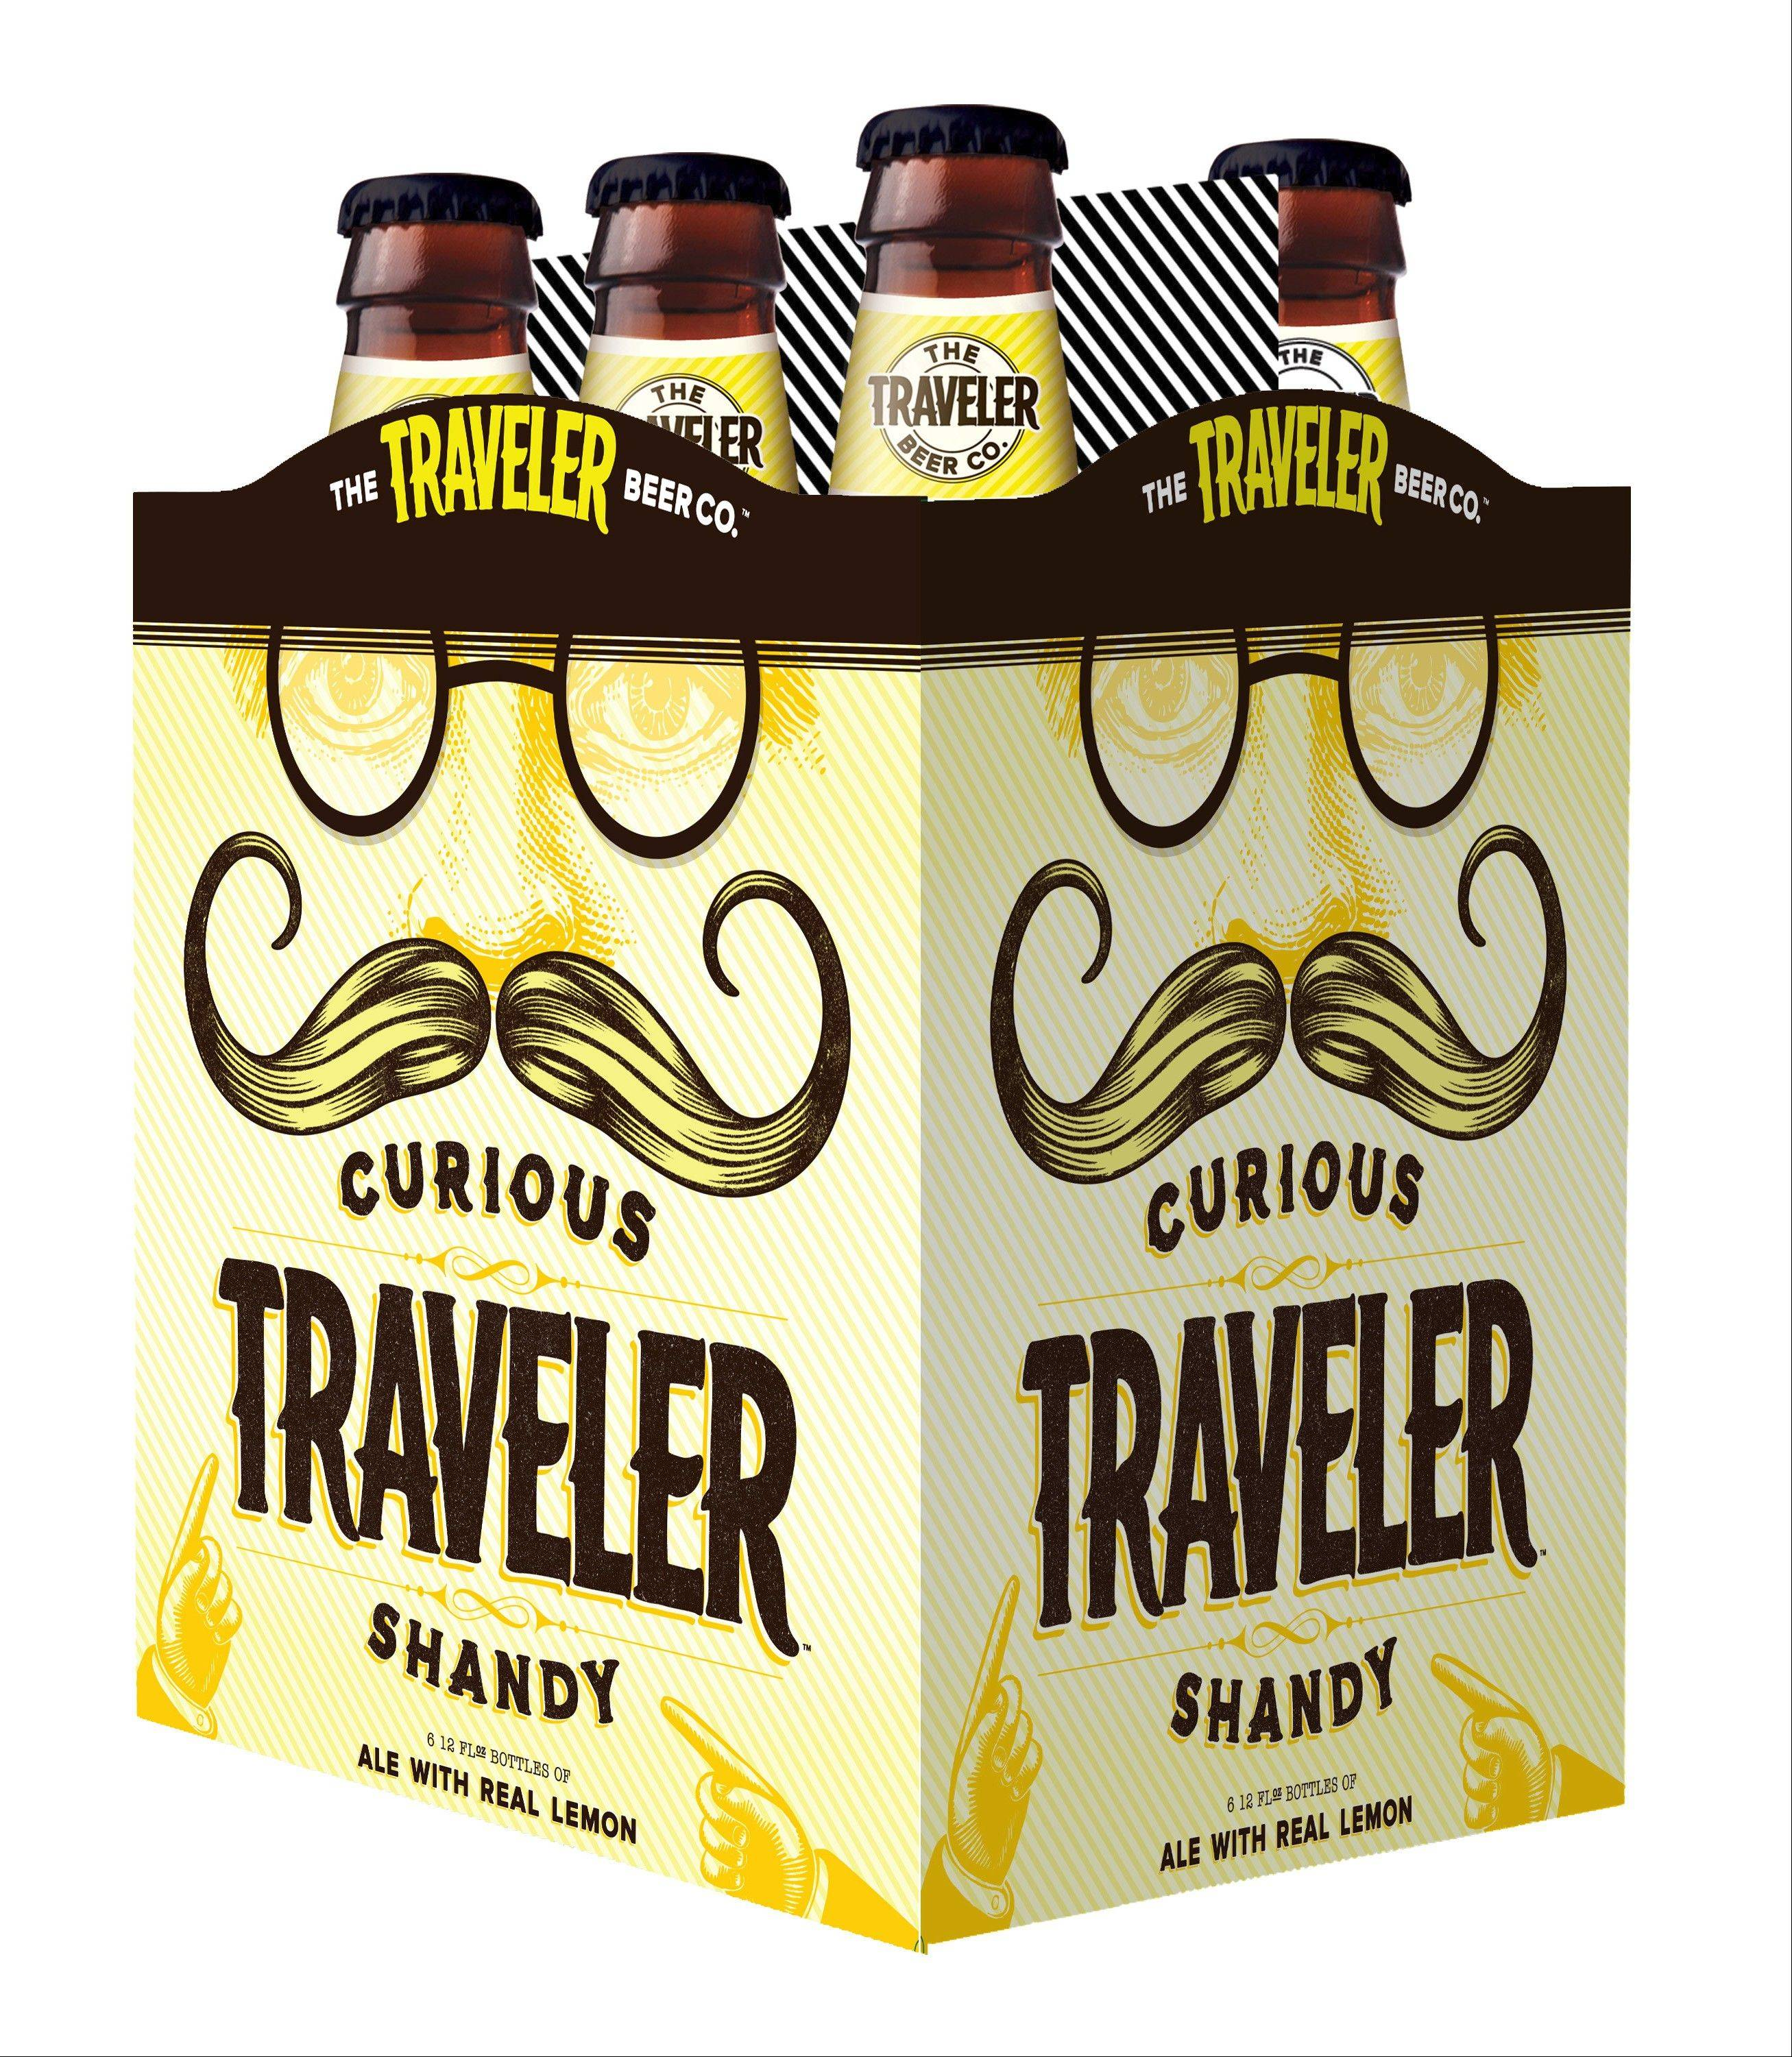 Curious Traveler is one of many shandies building a popular market among beer drinkers.